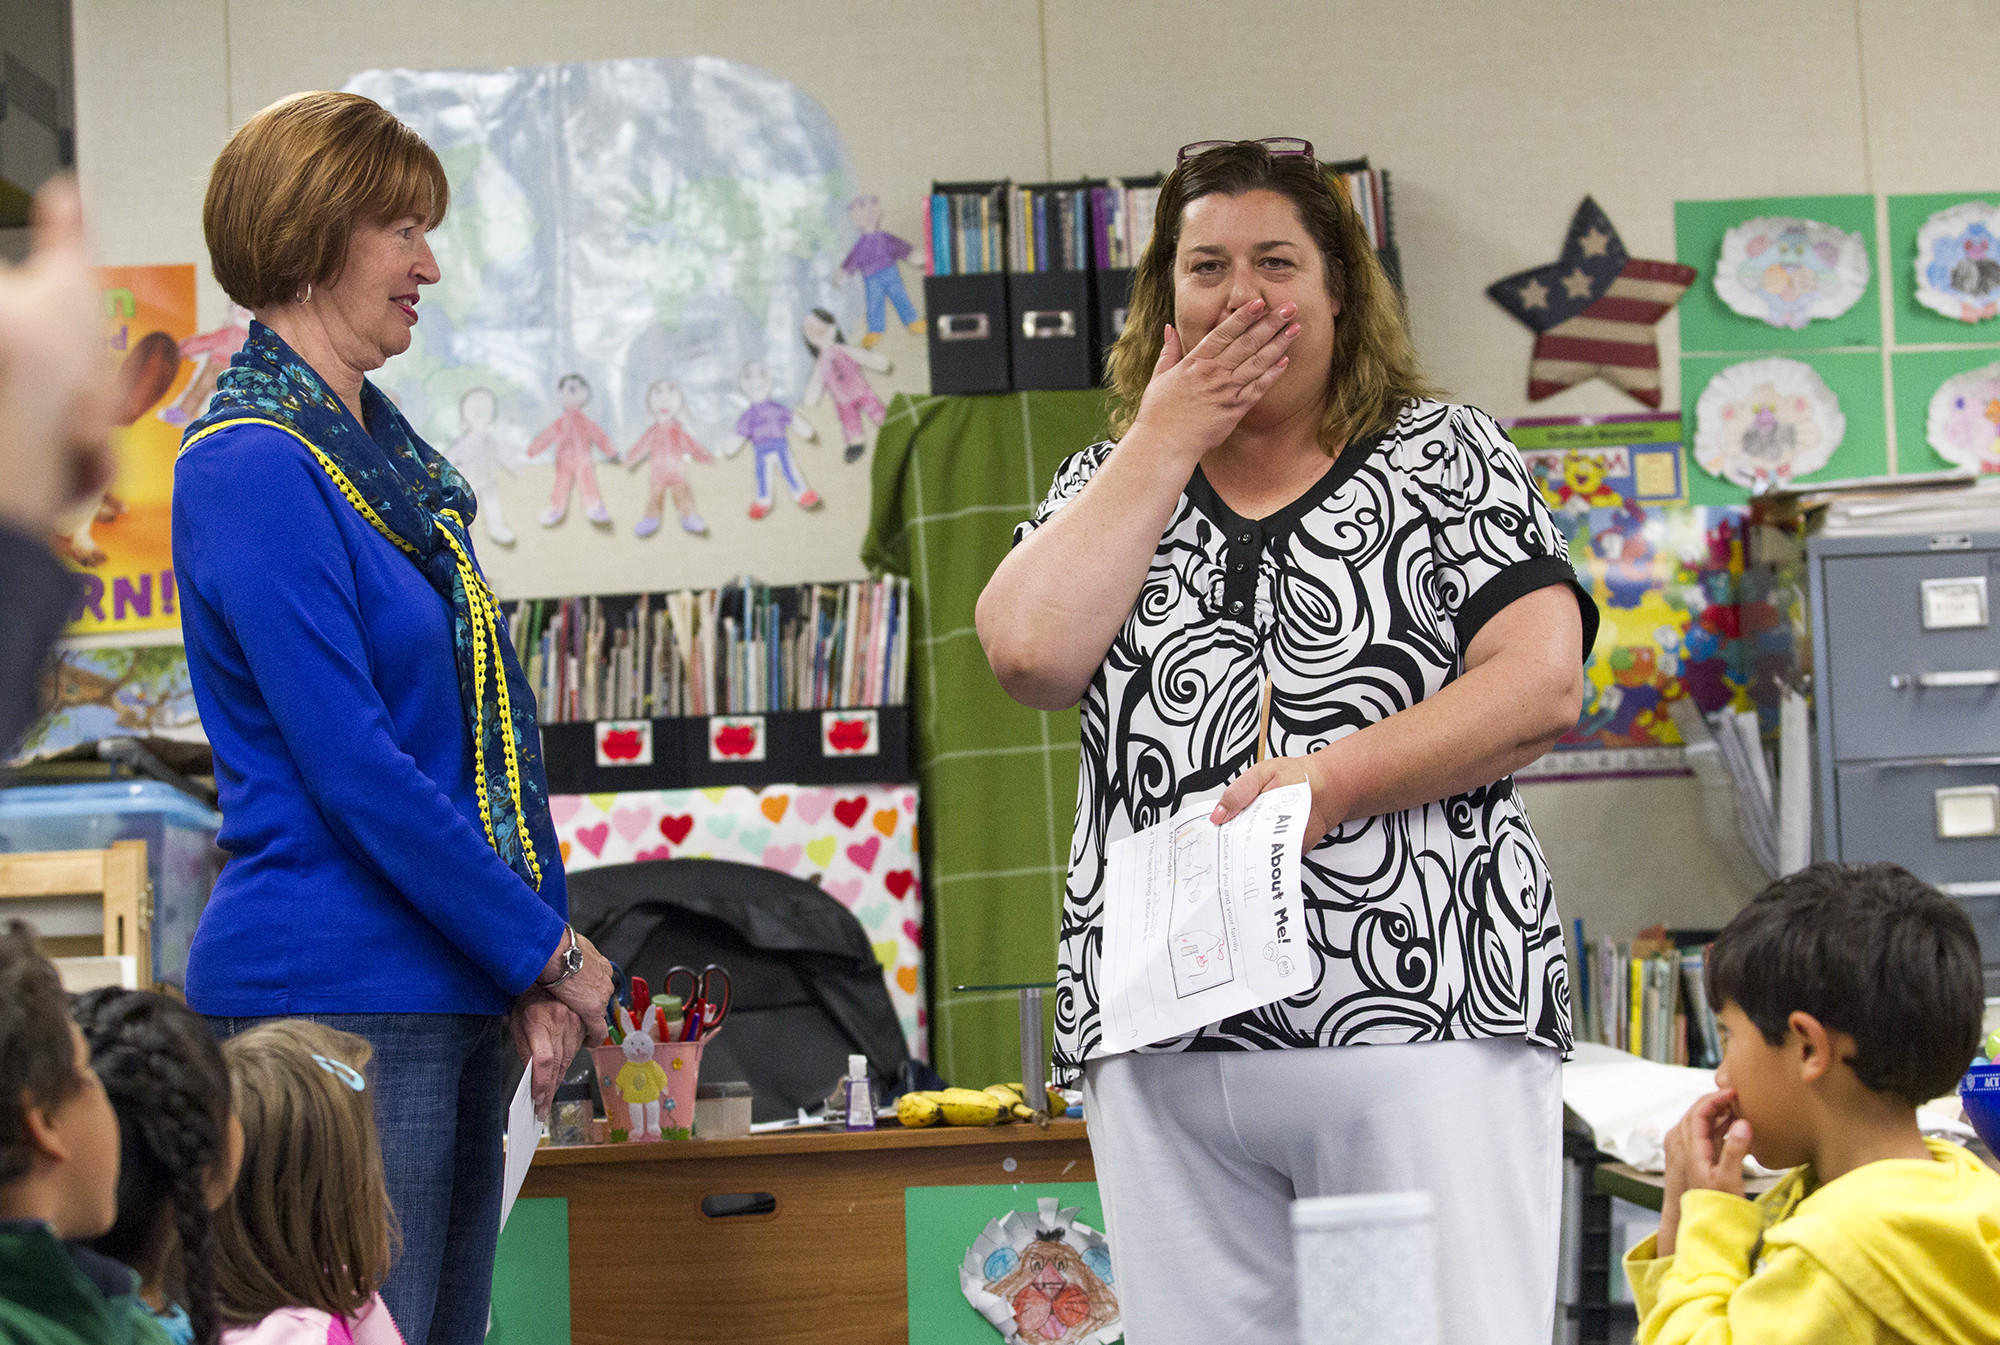 Cindy Fernald, right, a kindergarten teacher at College Park Elementary School, reacts after Barbara Steck, the president of the Costa Mesa Library Foundation, presents her with a nomination for the foundation's first ever Favorite Teacher contest on Thursday.